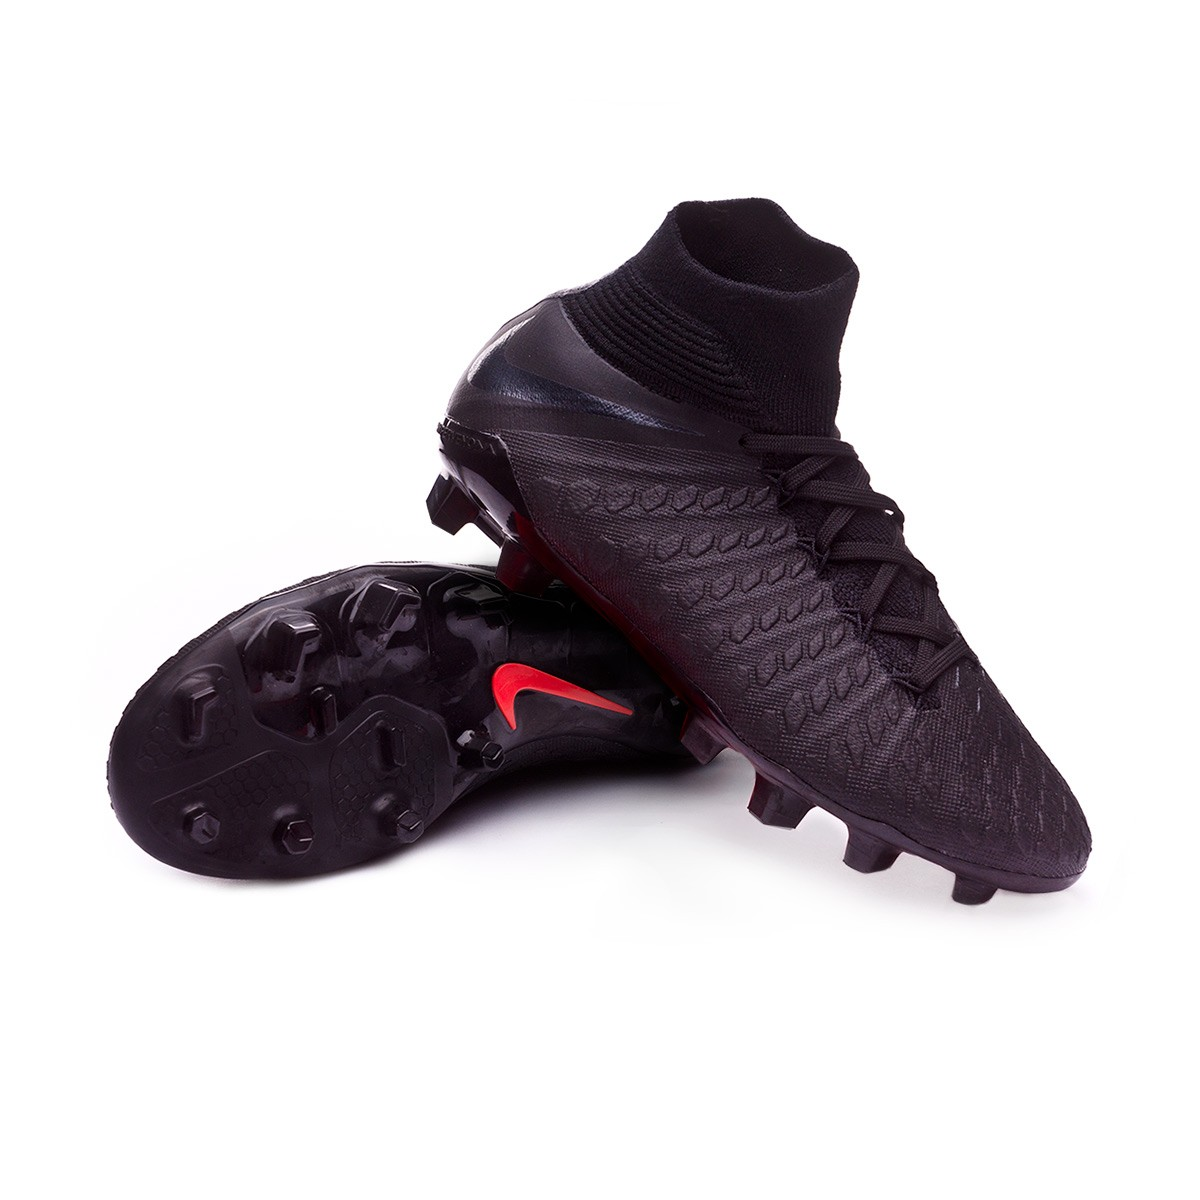 9fb3c0e69d1f Football Boots Nike Kids Hypervenom Phantom III Elite DF FG Black ...